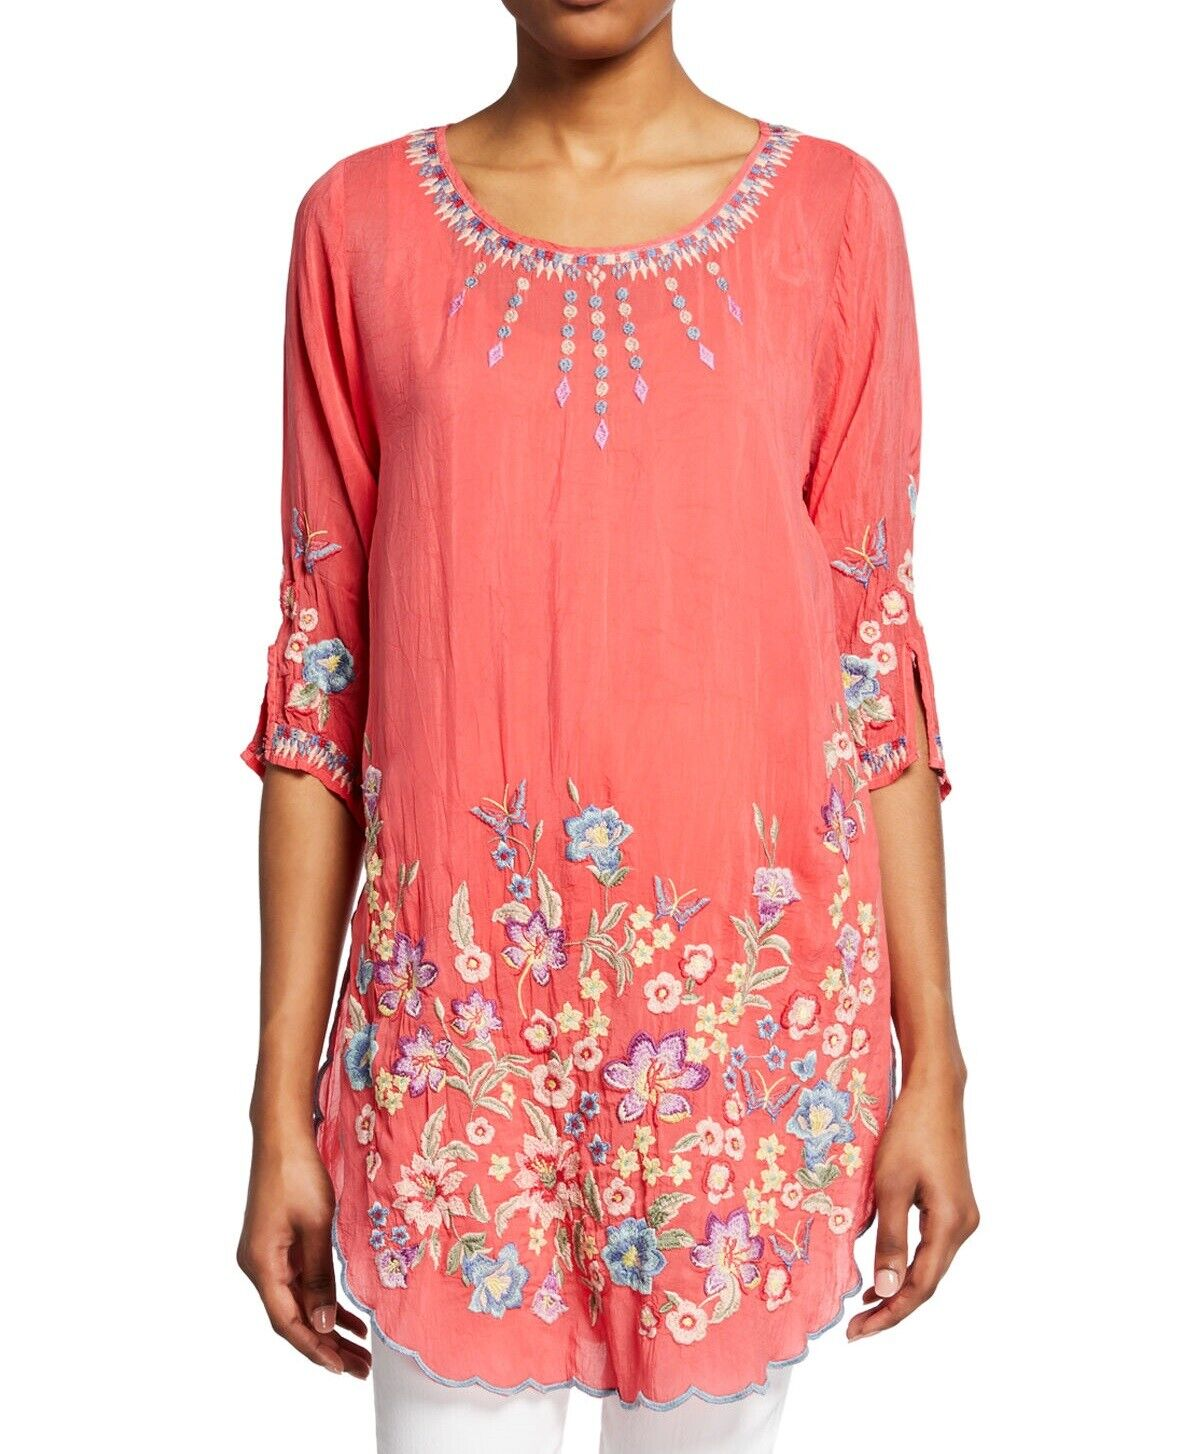 c07a29316 Johnny Was Marin Floral Embroidered Scoop-Neck Half Sleeve Tunic - C23819-2